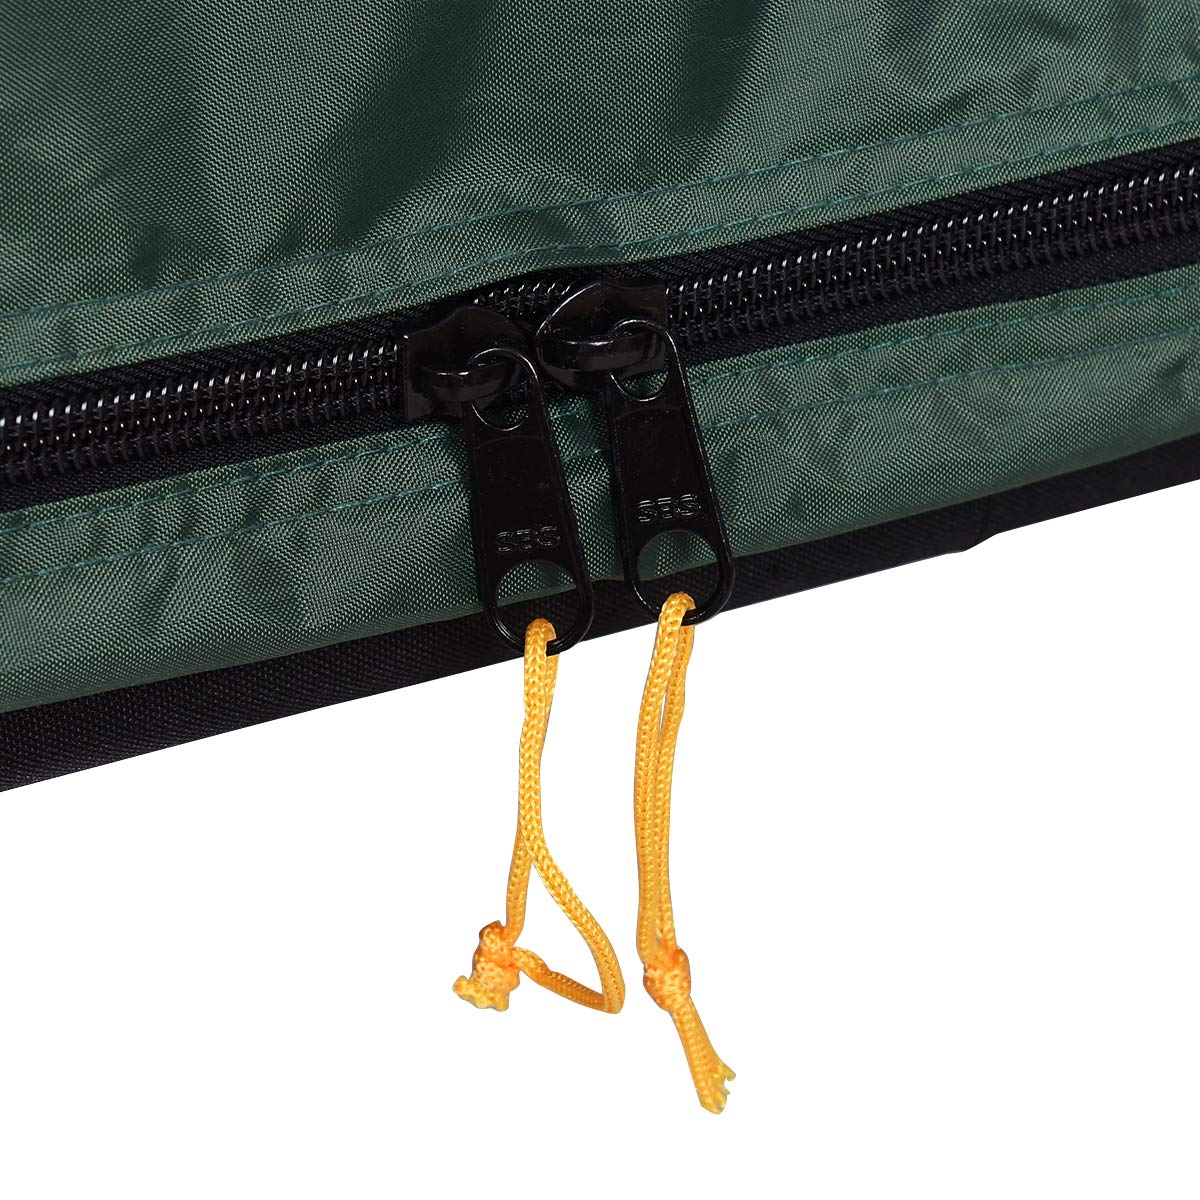 GYMAX Tent Cot, 1 Person Foldable Camping Waterproof Shelter with Window Carry Bag by GYMAX (Image #7)